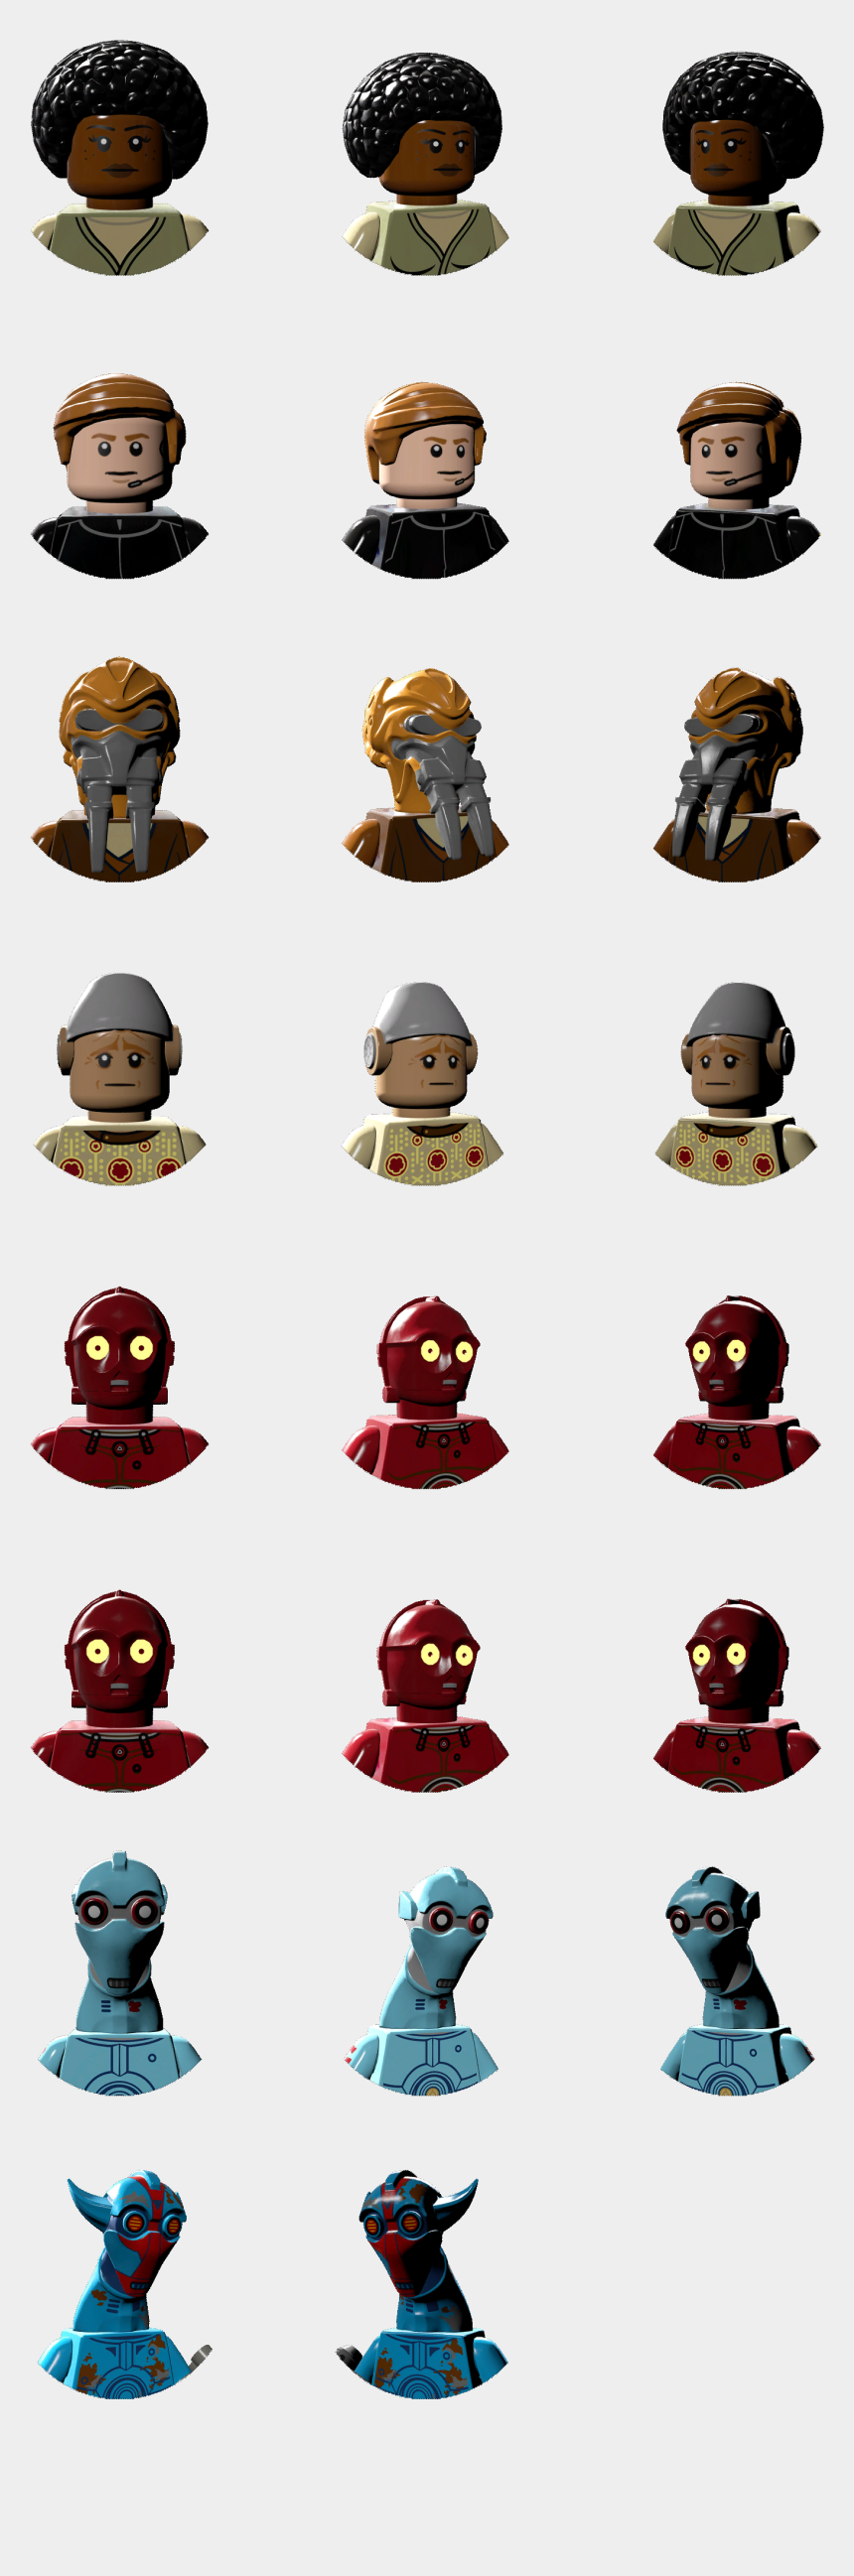 star wars the force awakens clipart, Cartoons - Lego Star Wars - Lego Star Wars Character Icons